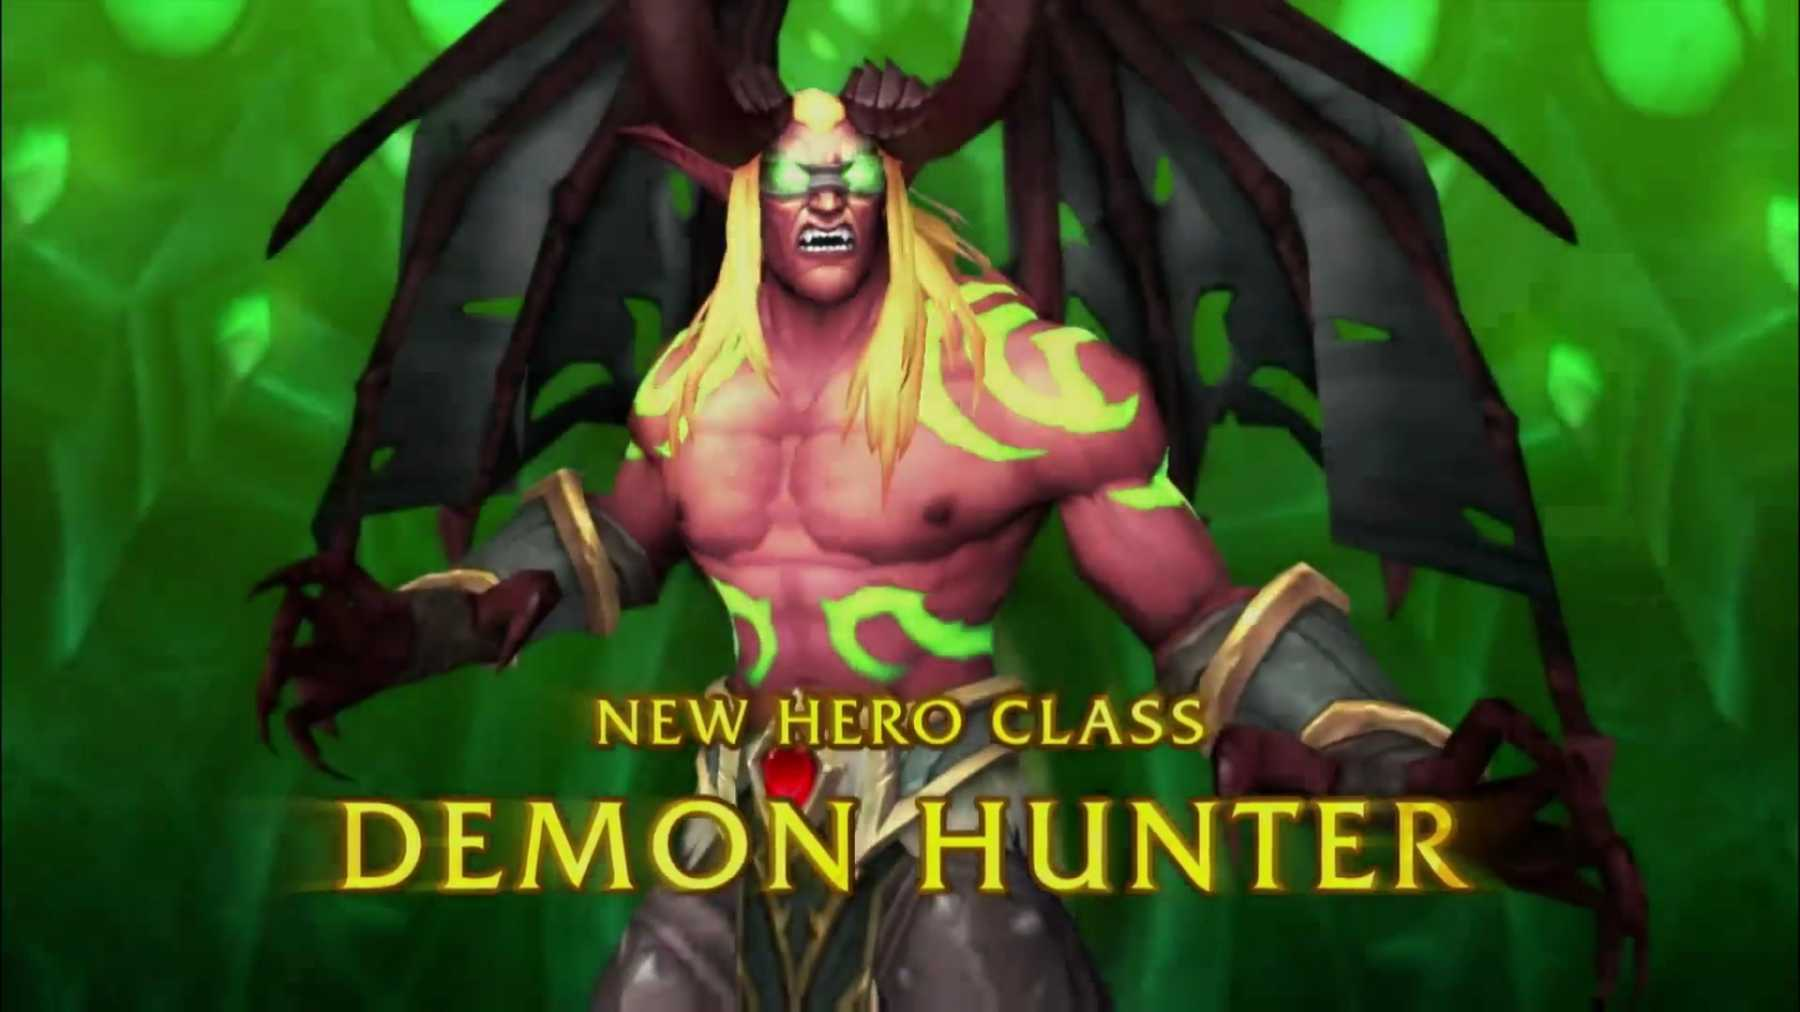 Ready Your Wallets: World Of Warcraft's New Expansion With Demon Hunter Class Revealed | world of warcraft